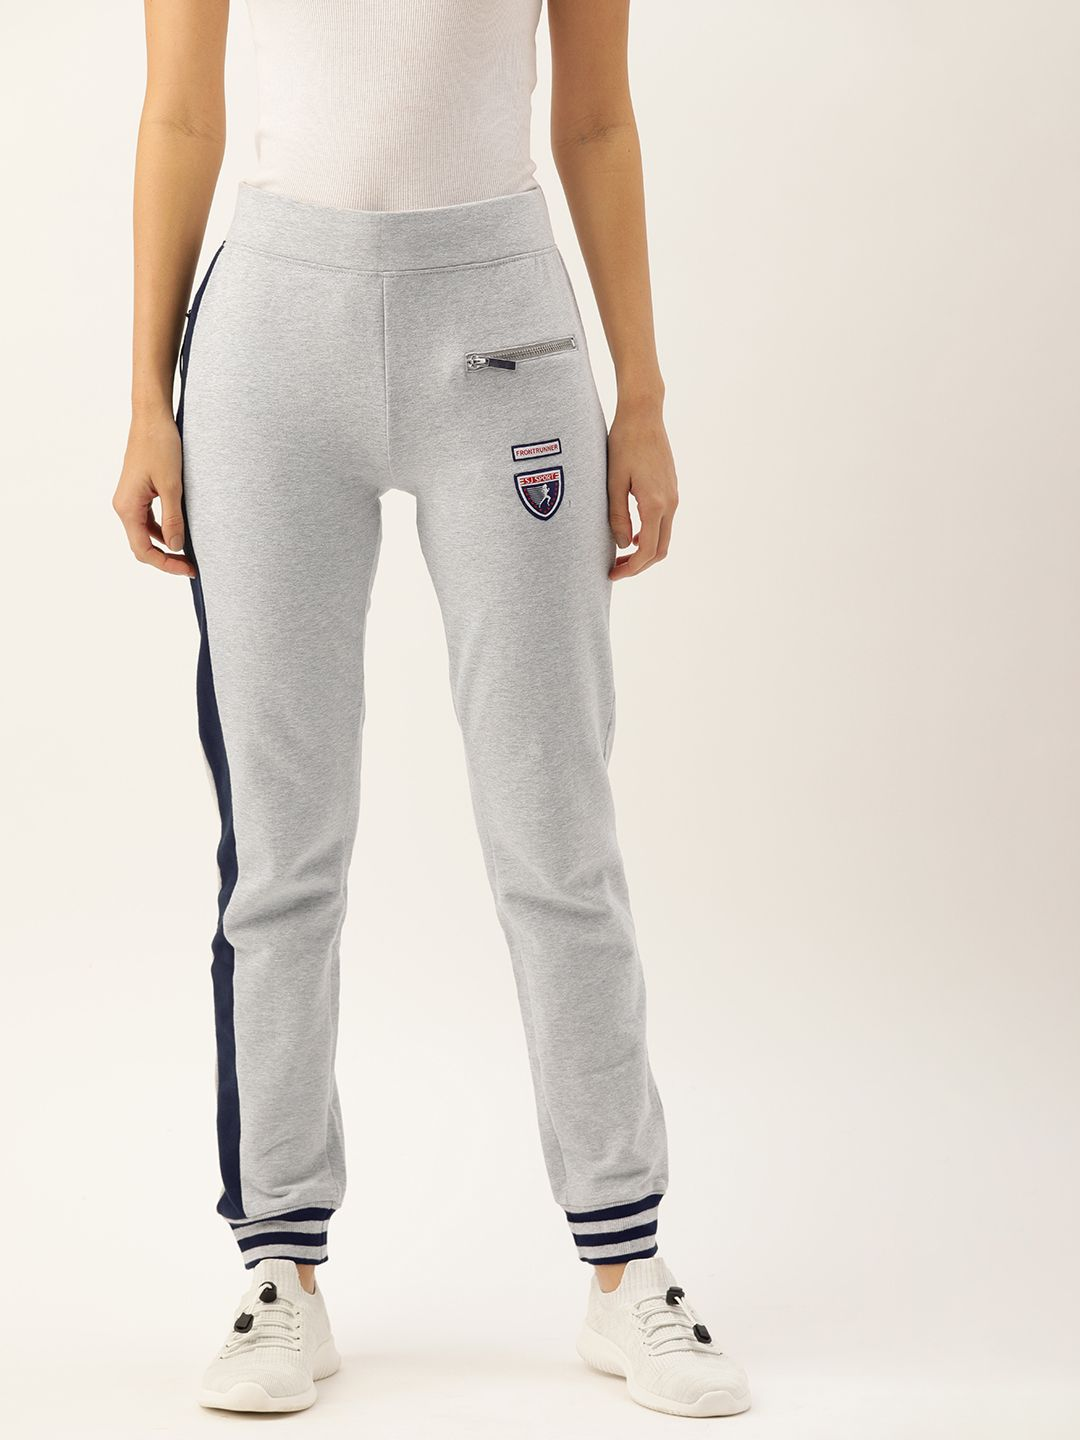 Slumber Jill Grey Melange Joggers with Badges